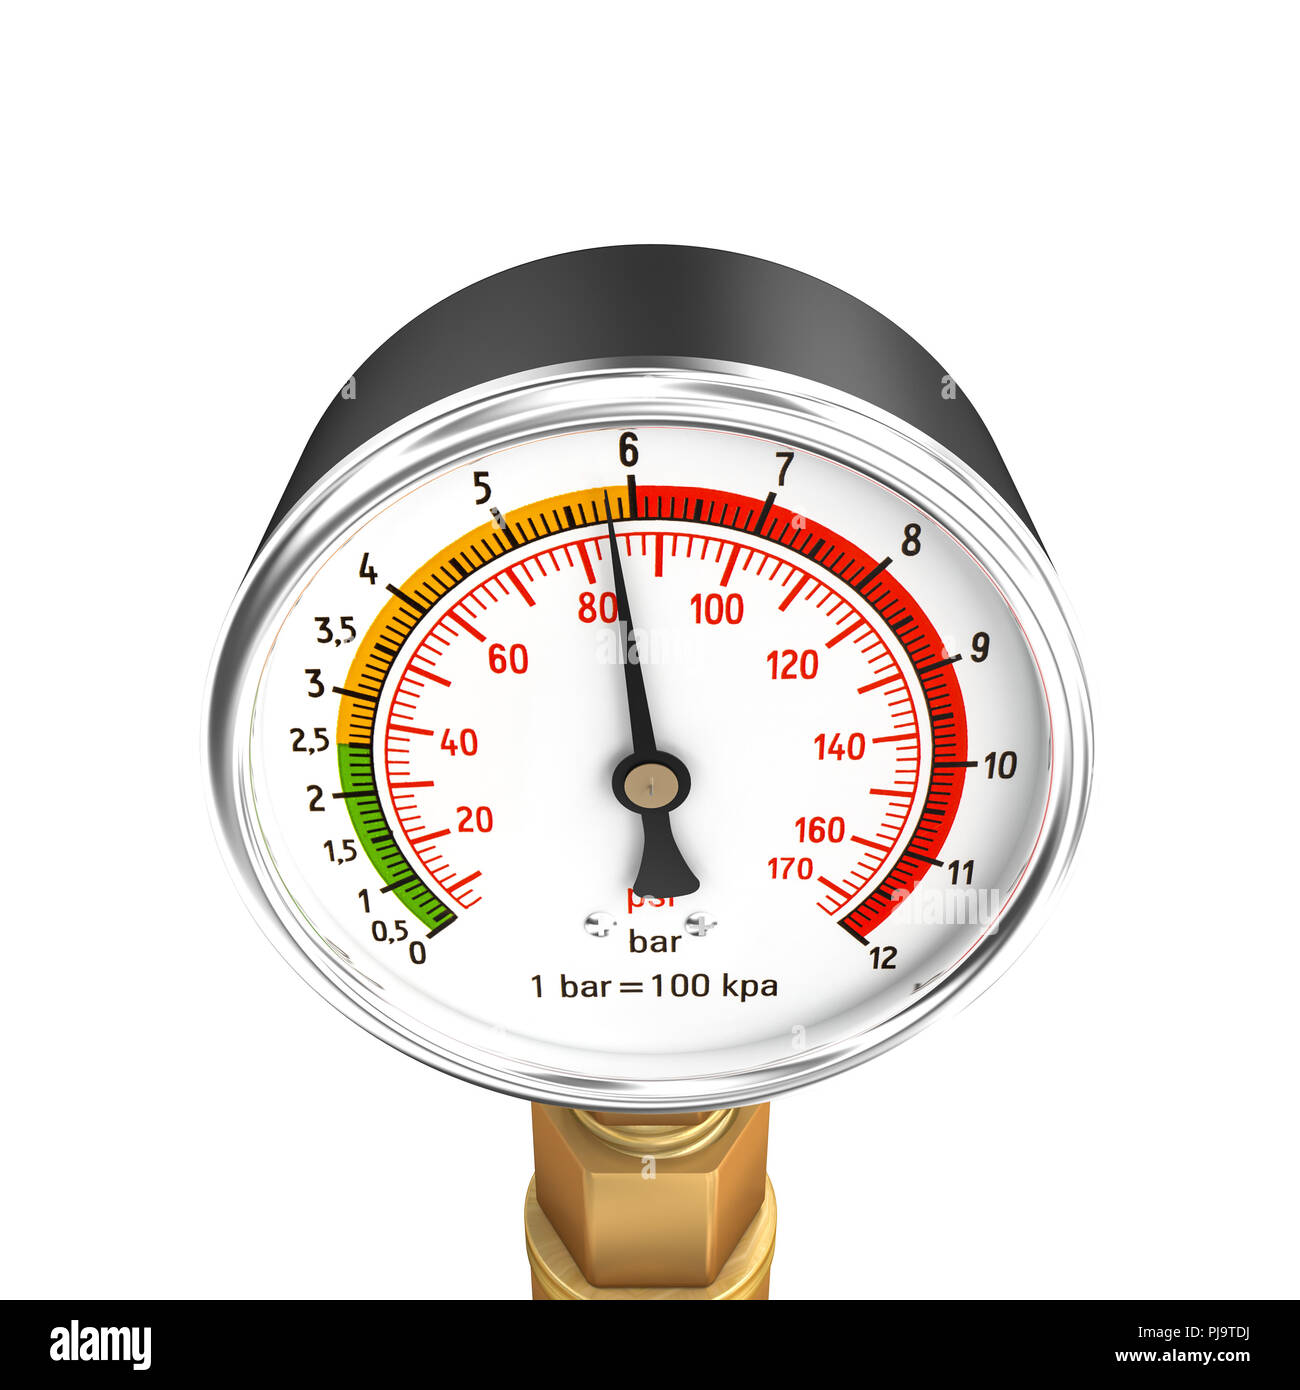 3d rendering of classic pressure gauge isolated on white background - Stock Image